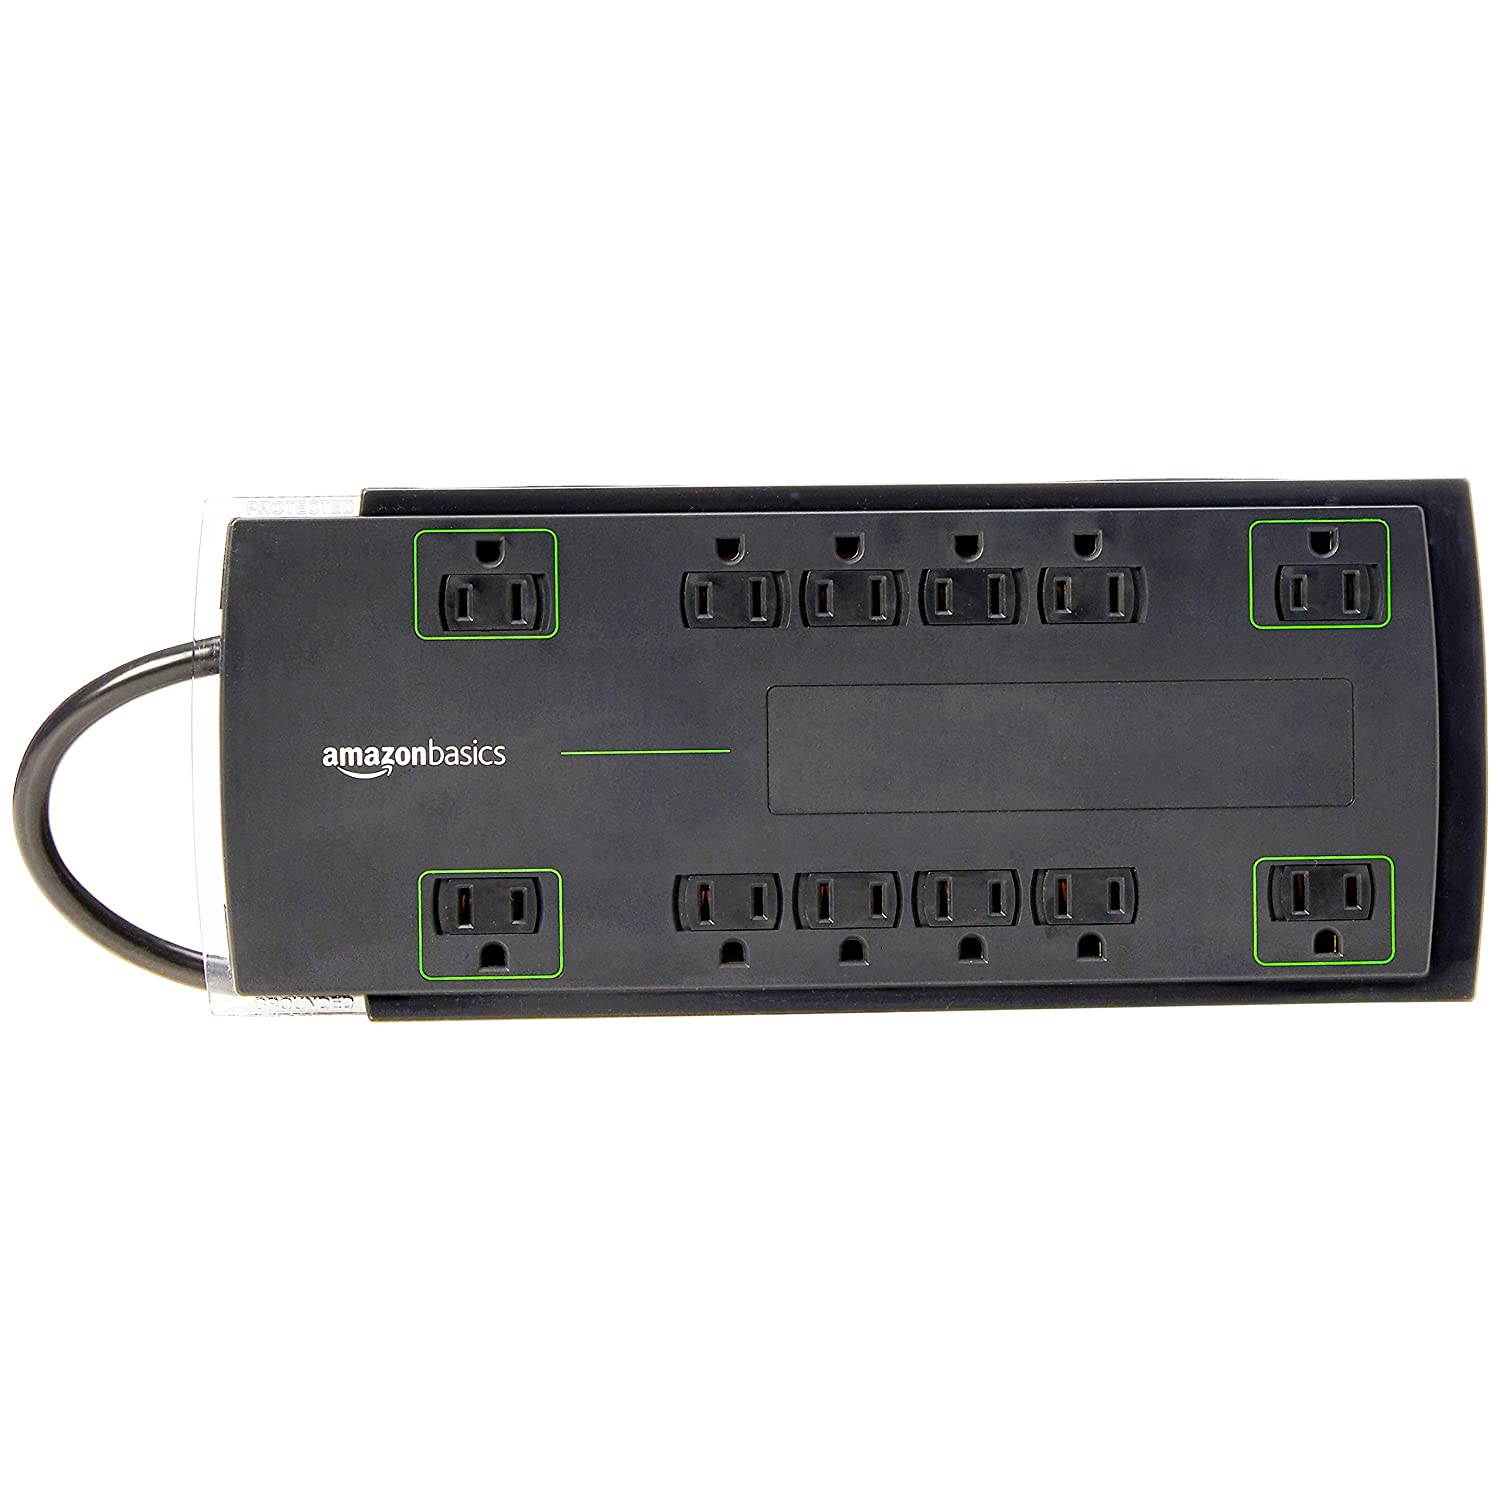 AmazonBasics 12-Outlet Surge Protector | 4,320 Joule, 8-Foot Cord (Renewed)